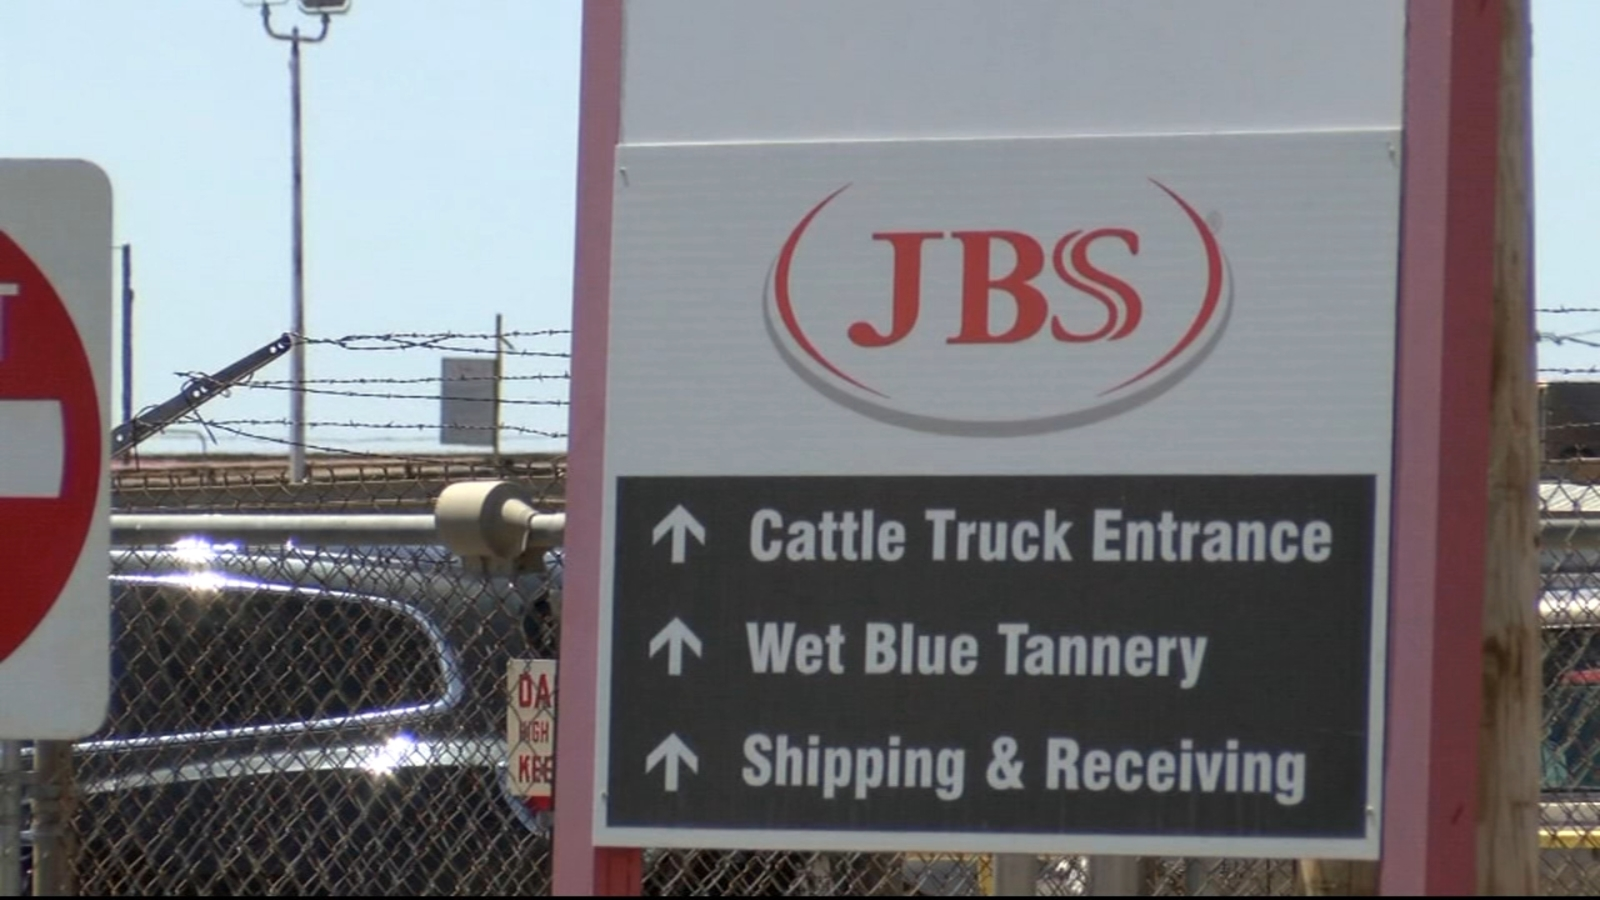 Cyberattack forces beef producer JBS to shut down plants: What that means for your meat supply